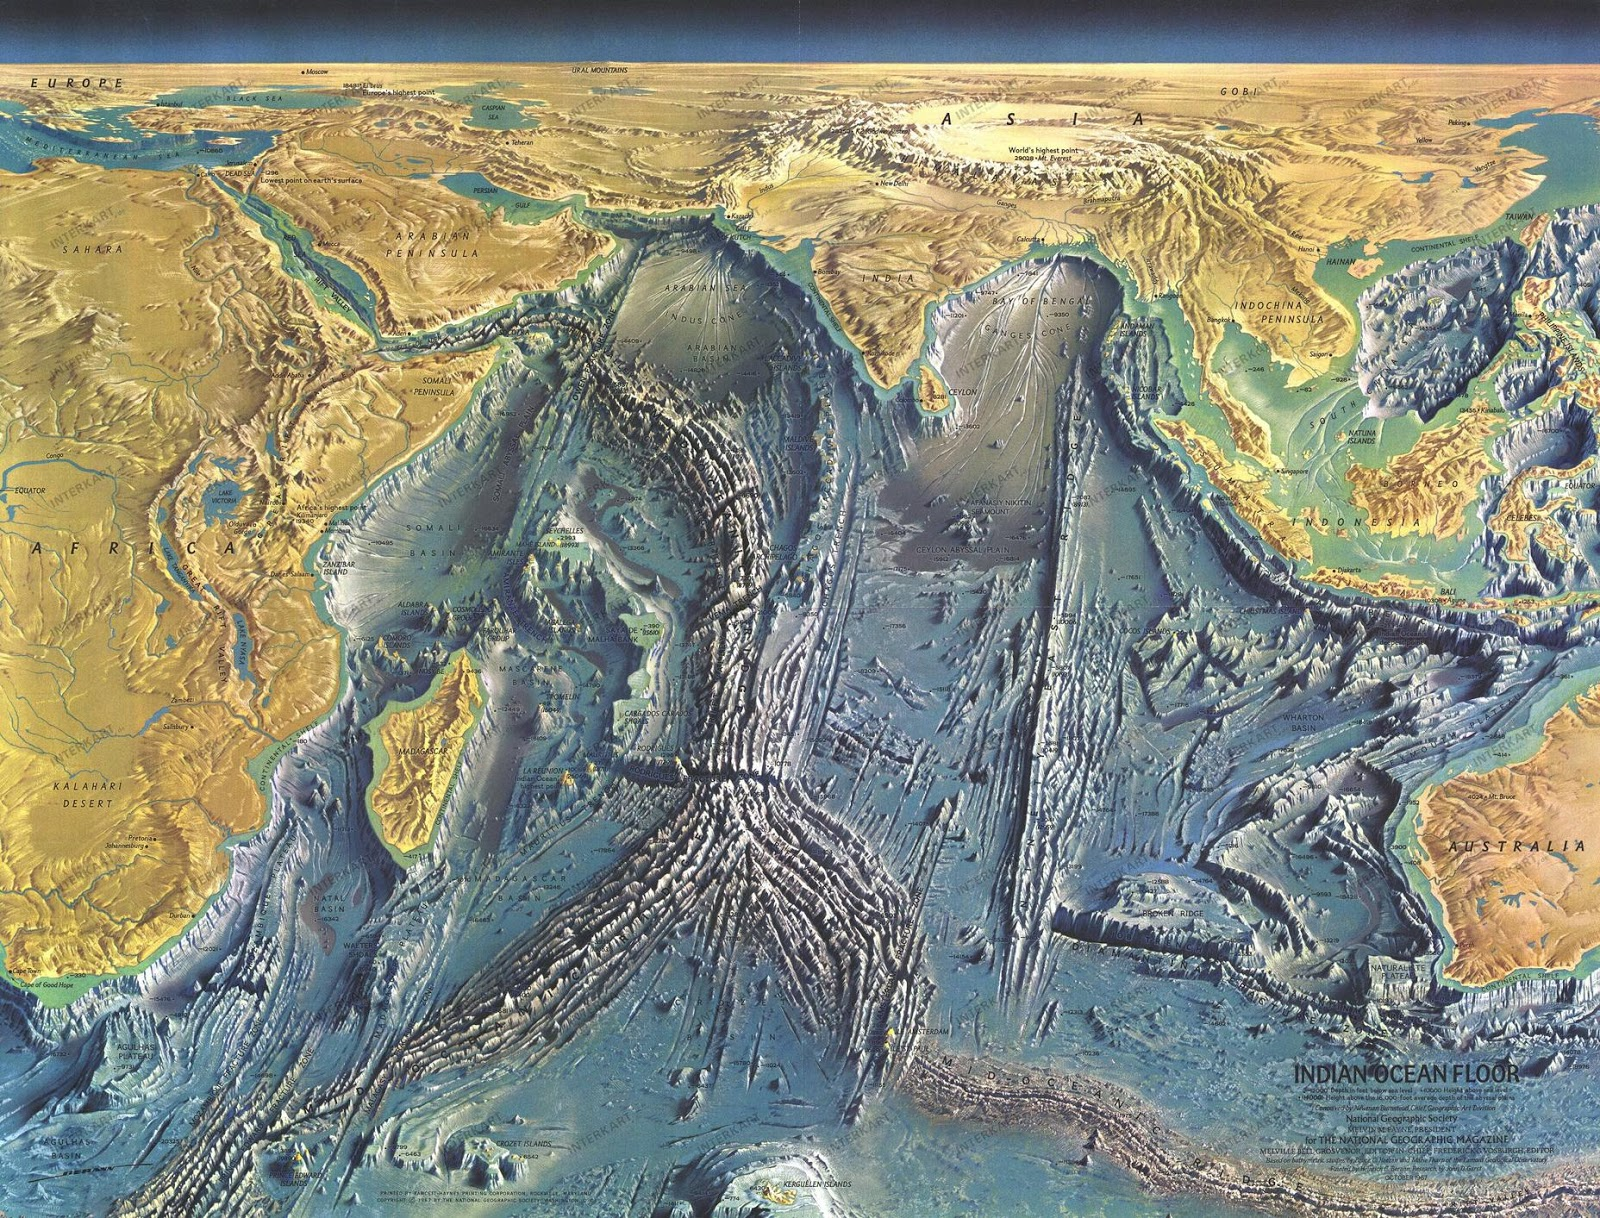 A detailed map of the Indian ocean floor